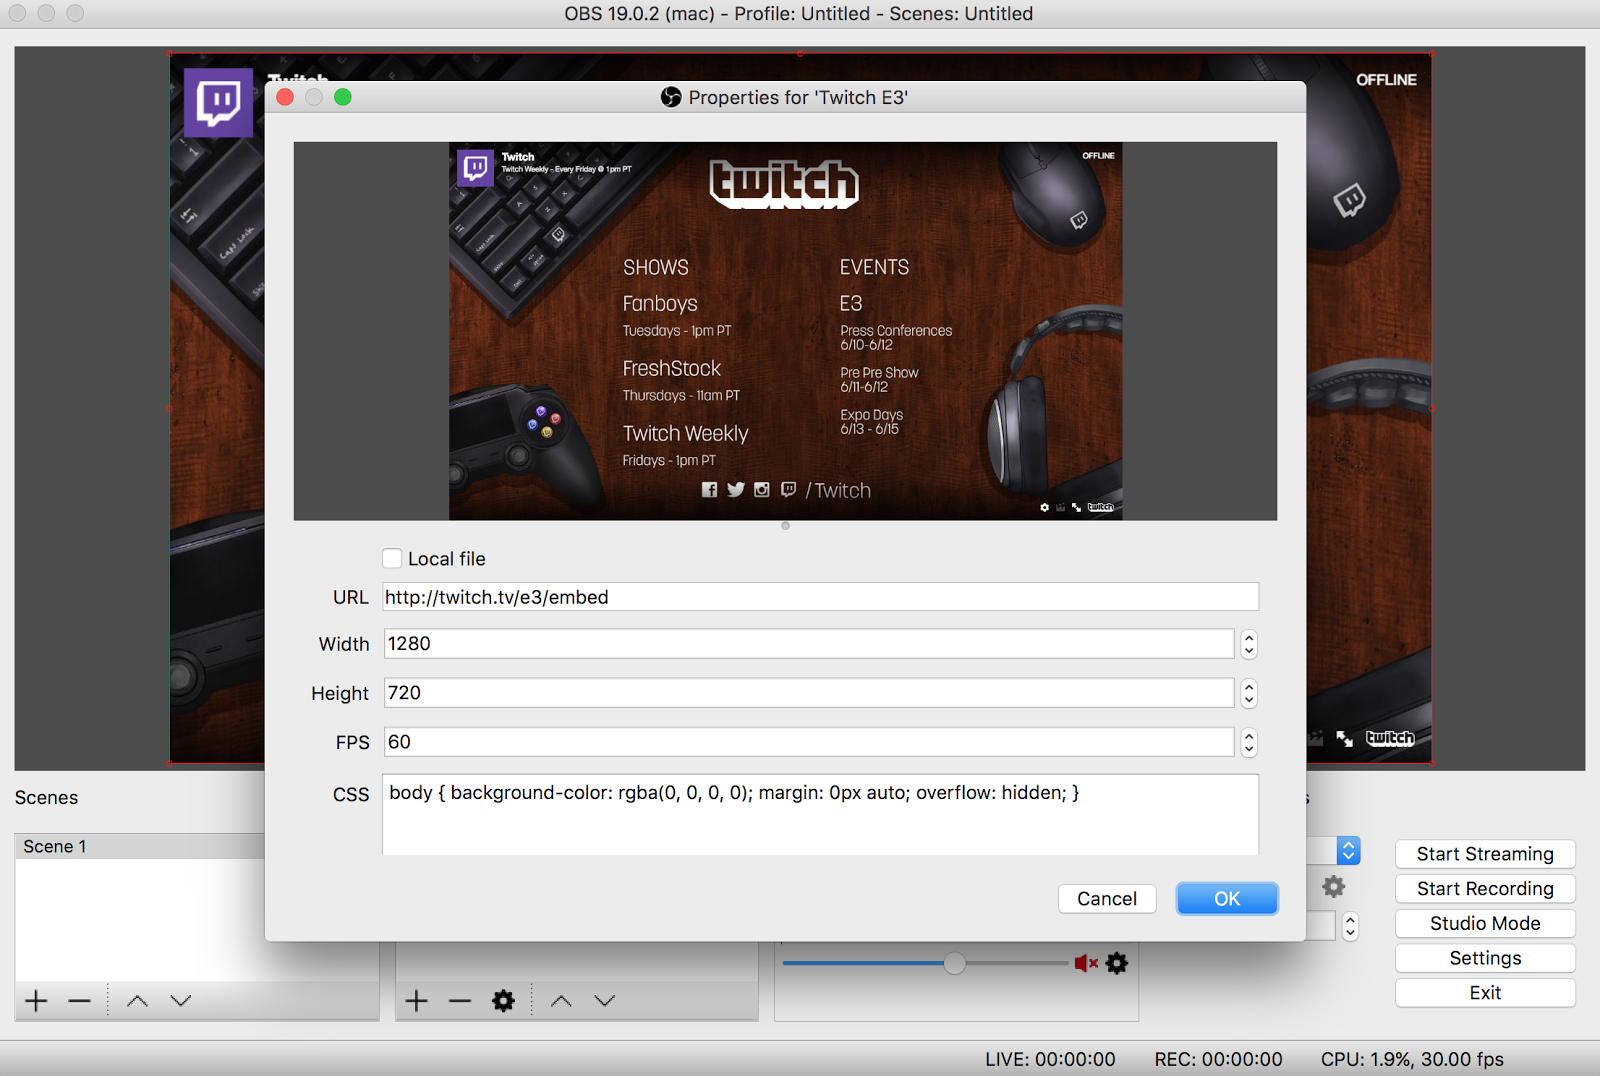 A step-by-step guide to Co-streaming E3 on Twitch - Twitch Blog